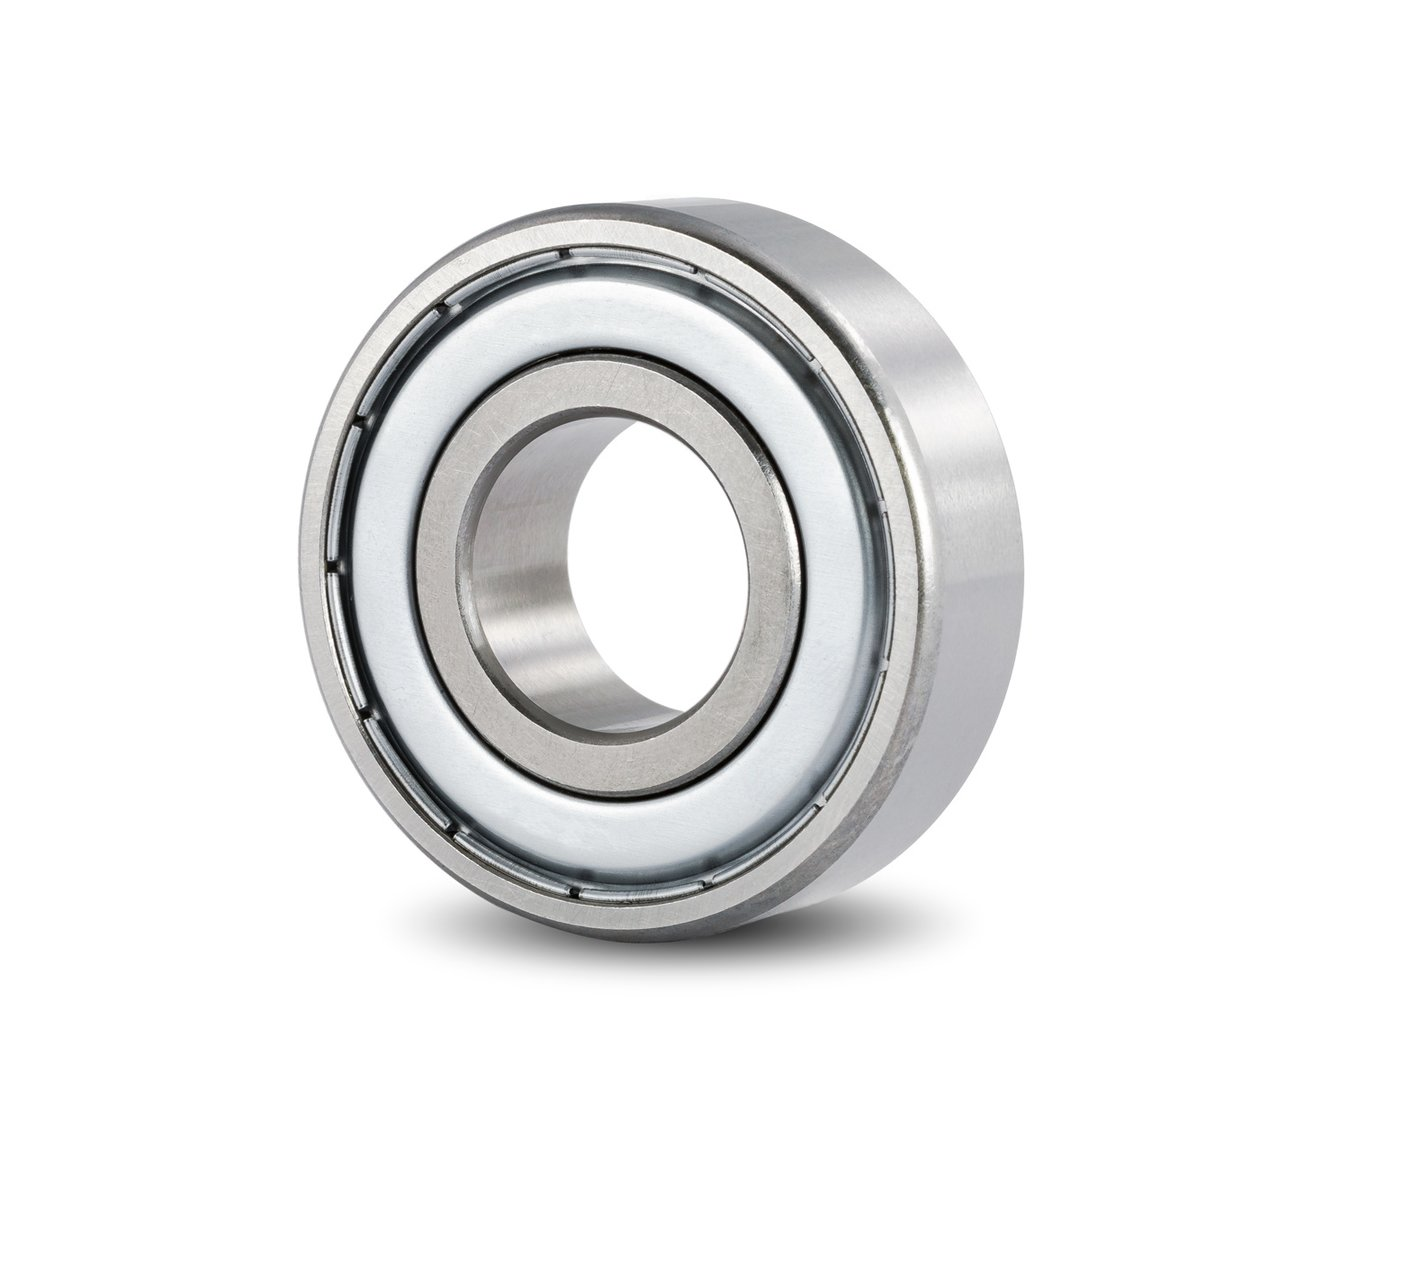 koyo Deep groove ball bearing 6211-ZZ-C3-KOYO - 55x100x21 mm